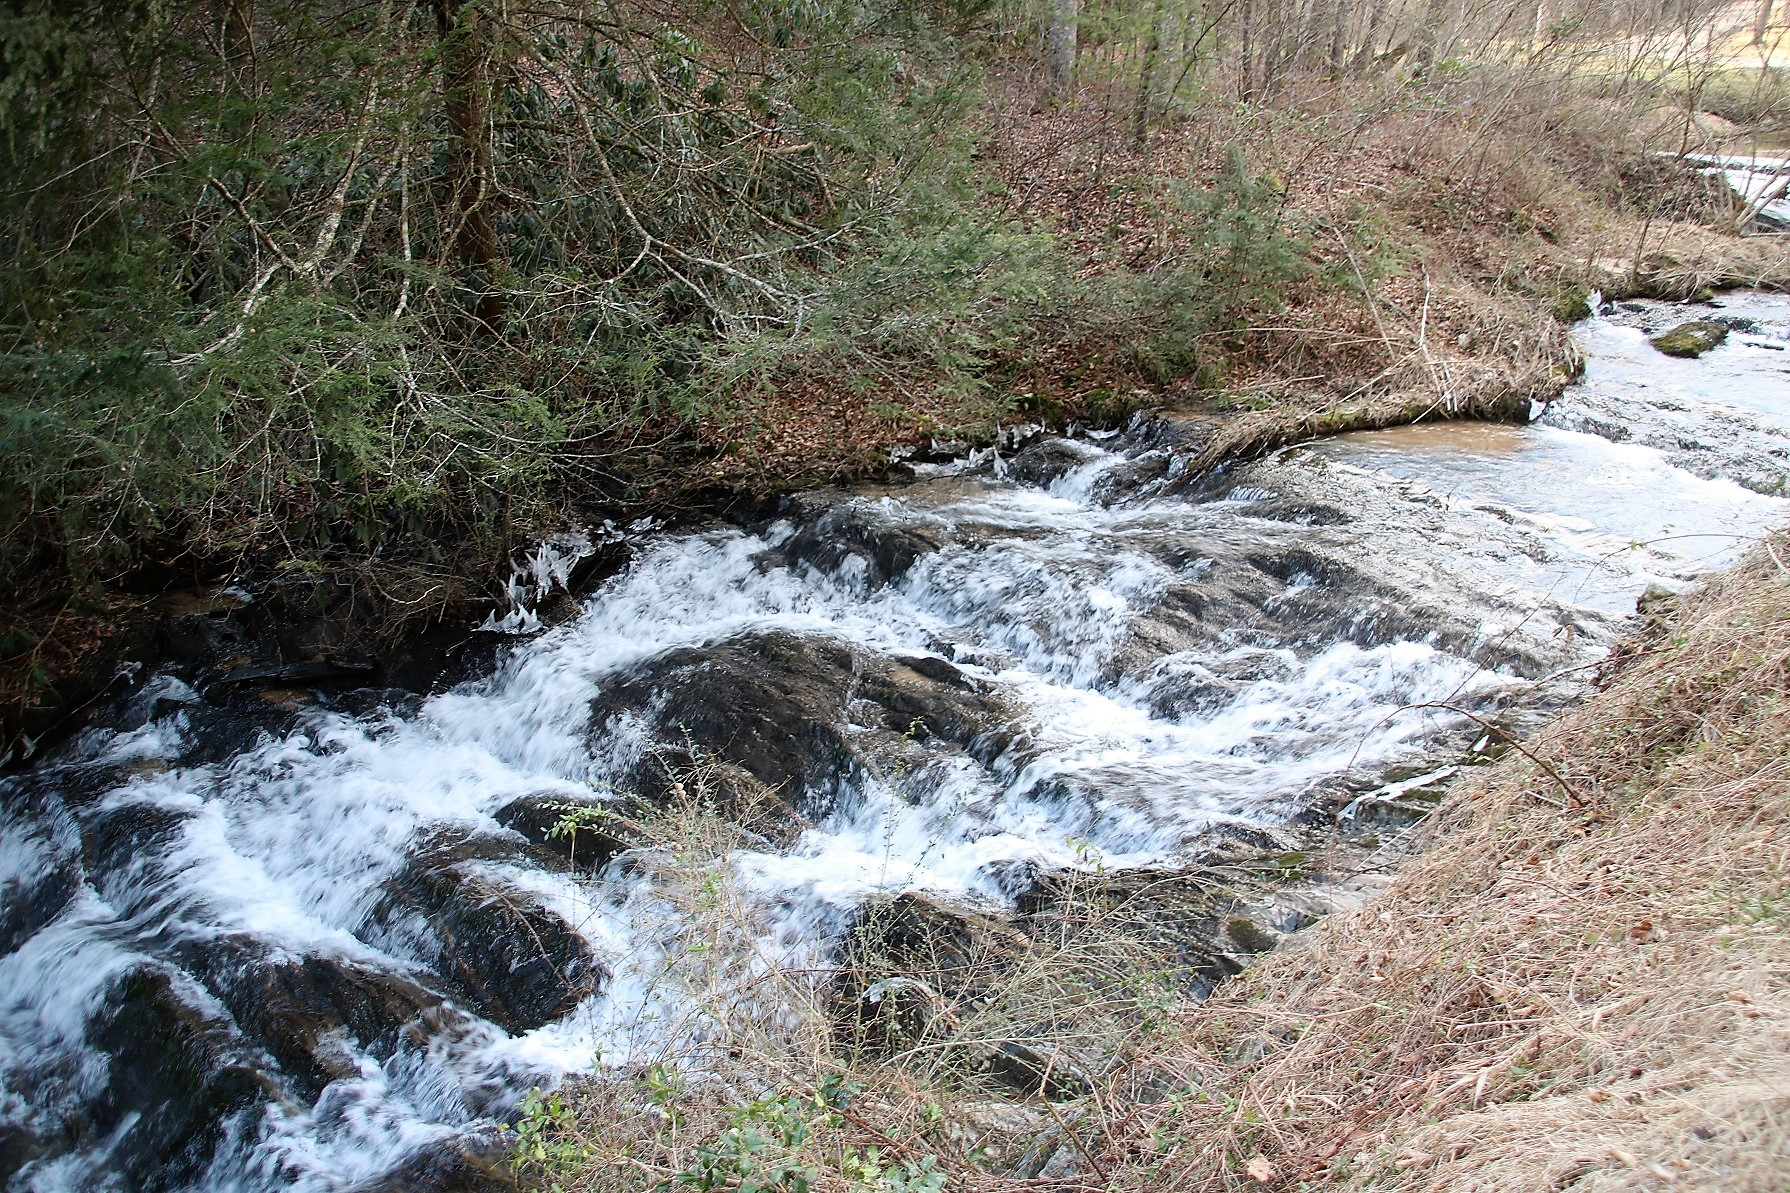 LAND TRACT 82.5 ACRES WITH BOLD MOUNTAIN STREAM FOR SALE IN WILKES COUNTY NC